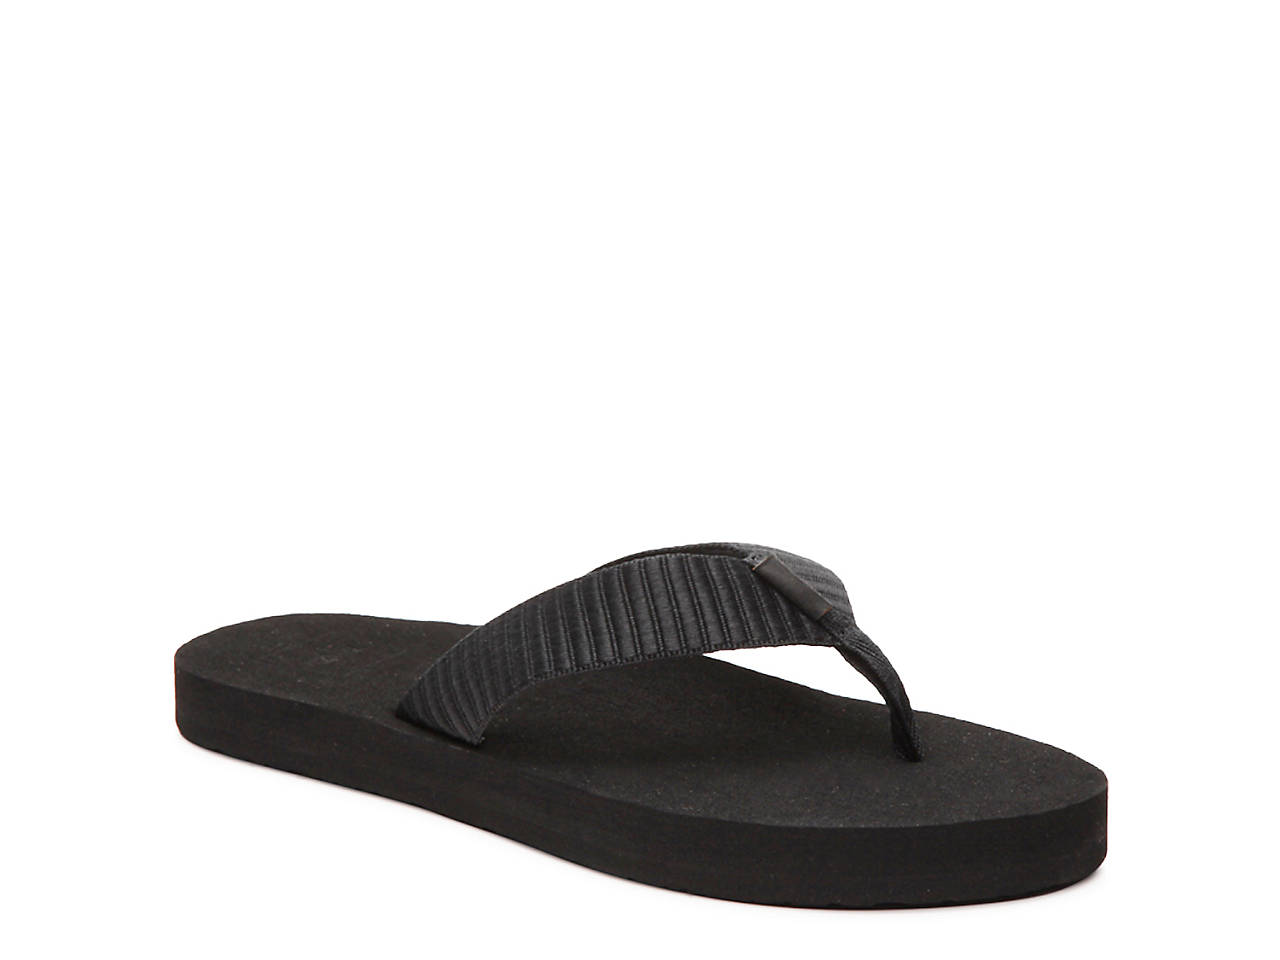 7329240ee6bd Teva Mush II Flip Flop Women s Shoes